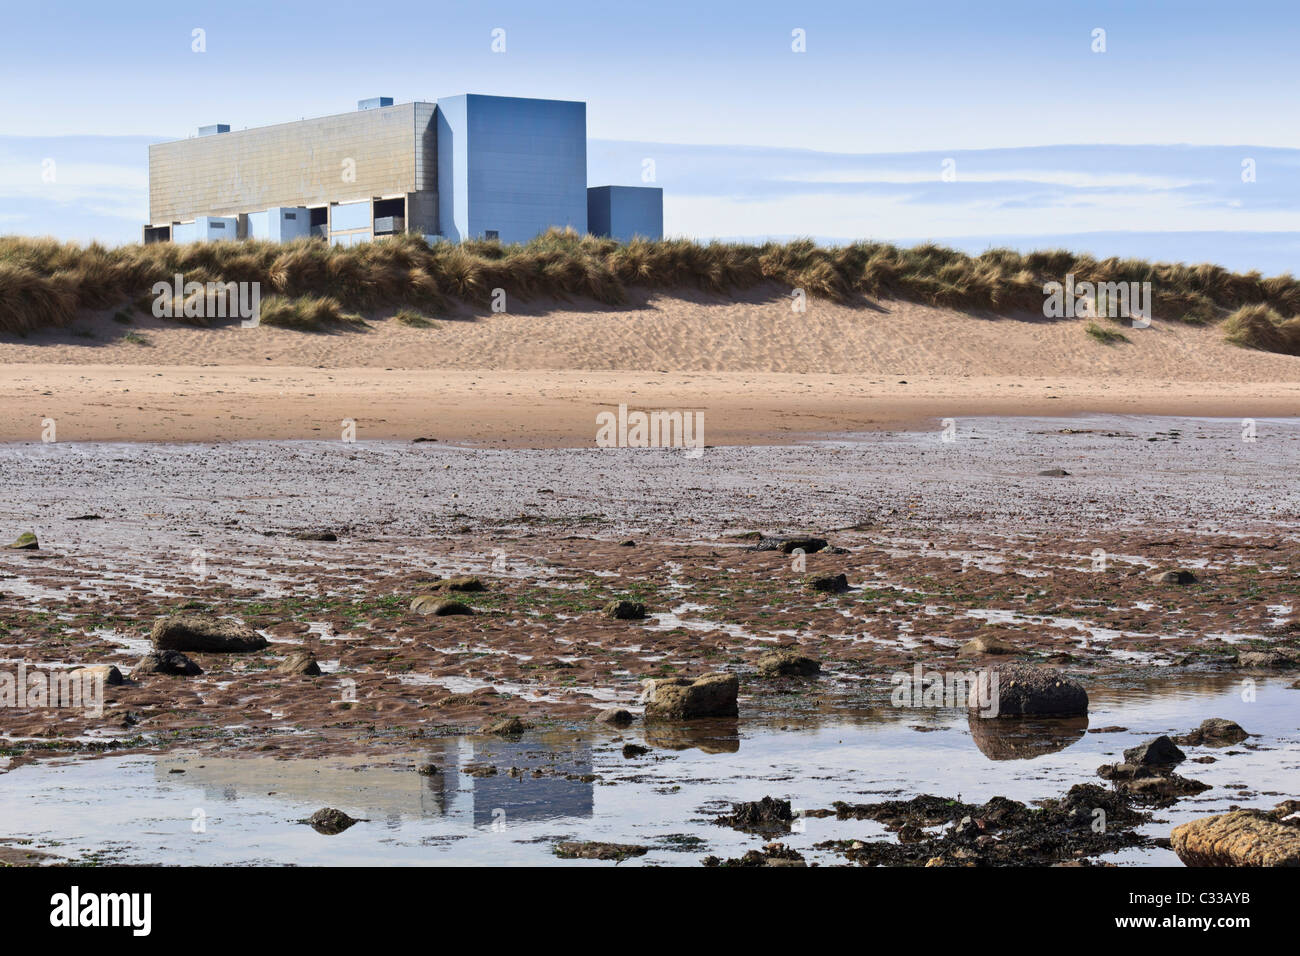 Torness twin Advanced Gas Cooled nuclear reactor power station, East Lothian, Scotland - atomic energy by the beach - Stock Image